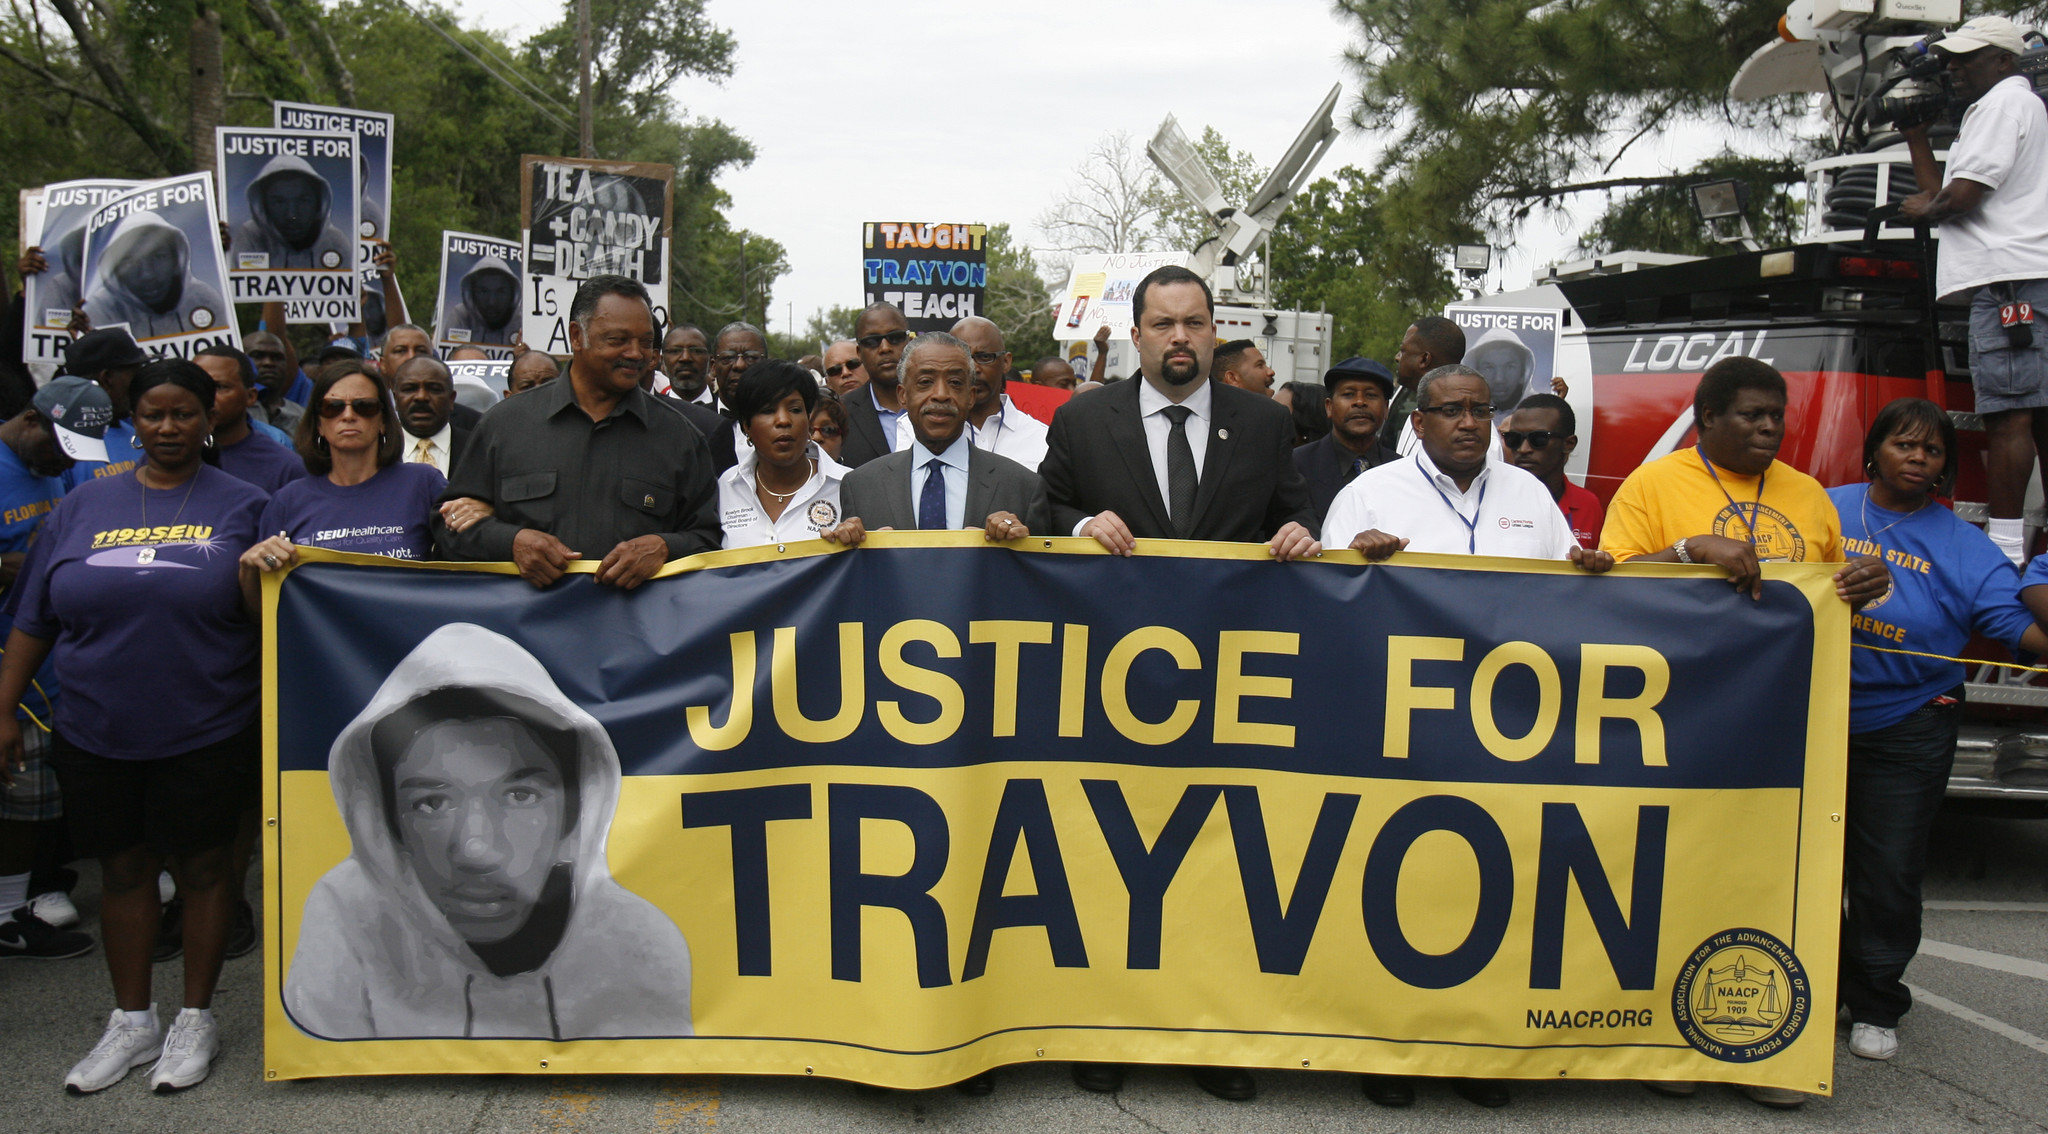 The Rev. Jesse Jackson, 3rd from left, marches with the Rev. Al Sharpton, center, and NAACP President Ben Jealous, center right, during a rally along W. 13th Street in Sanford, Florida, Saturday, March 31, 2012.